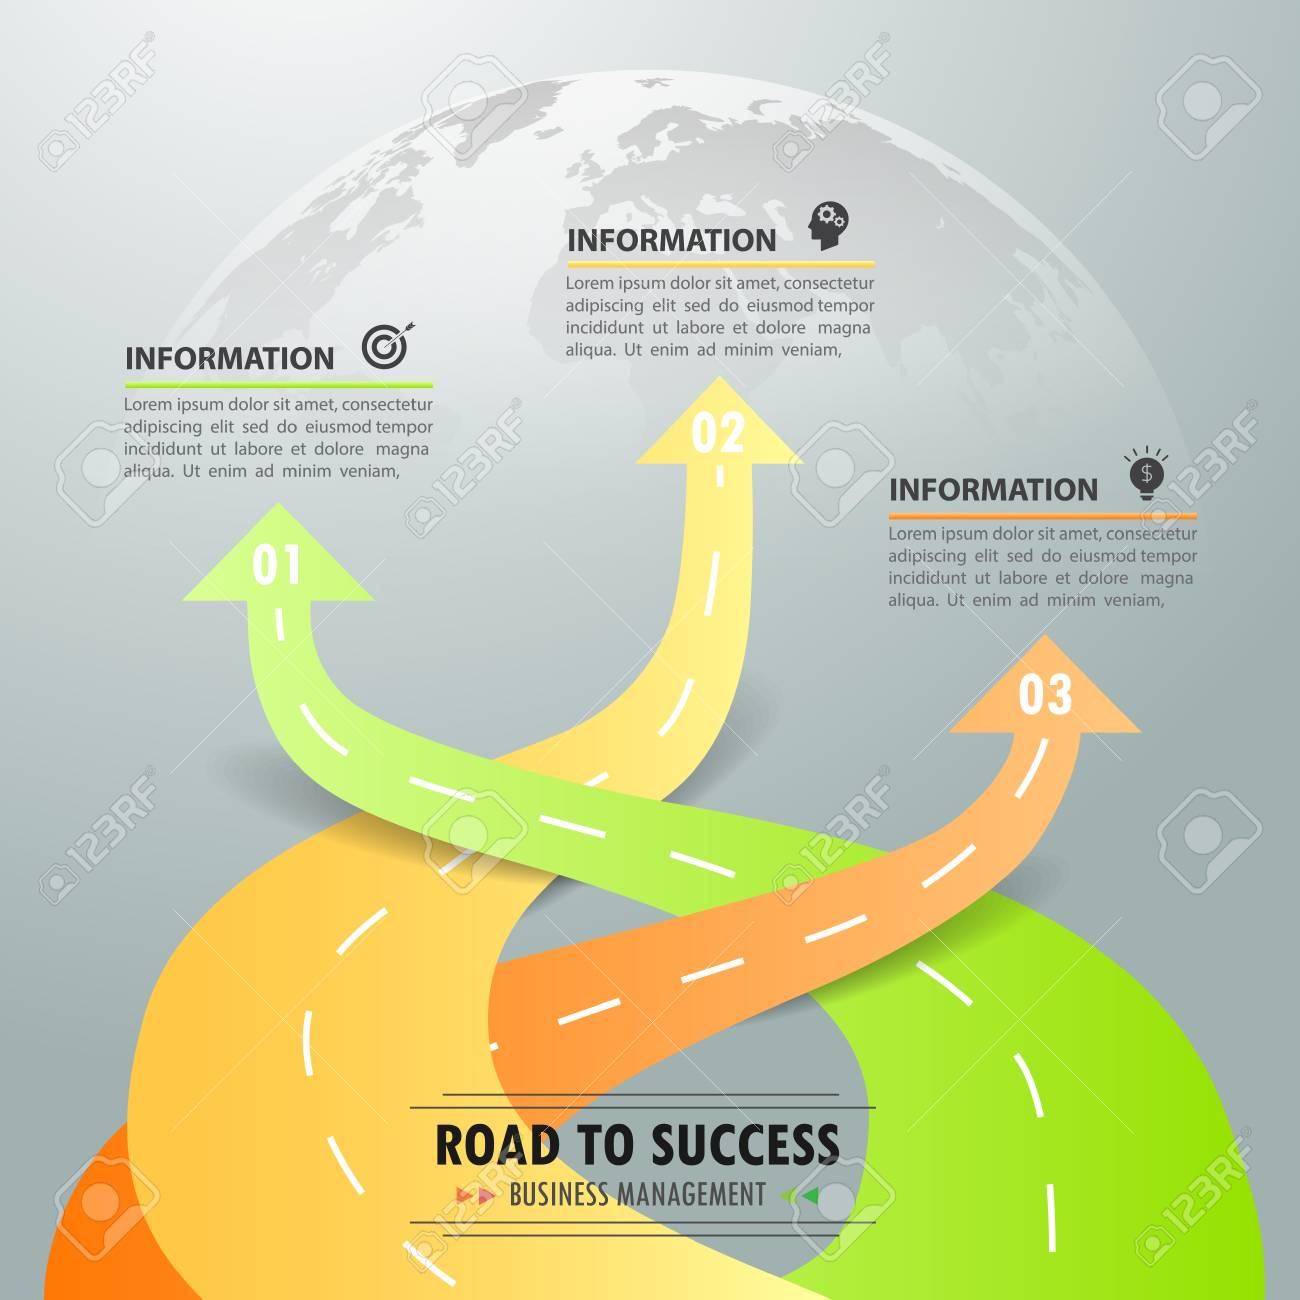 road way infographic template 3 options can be used for workflow layout diagram